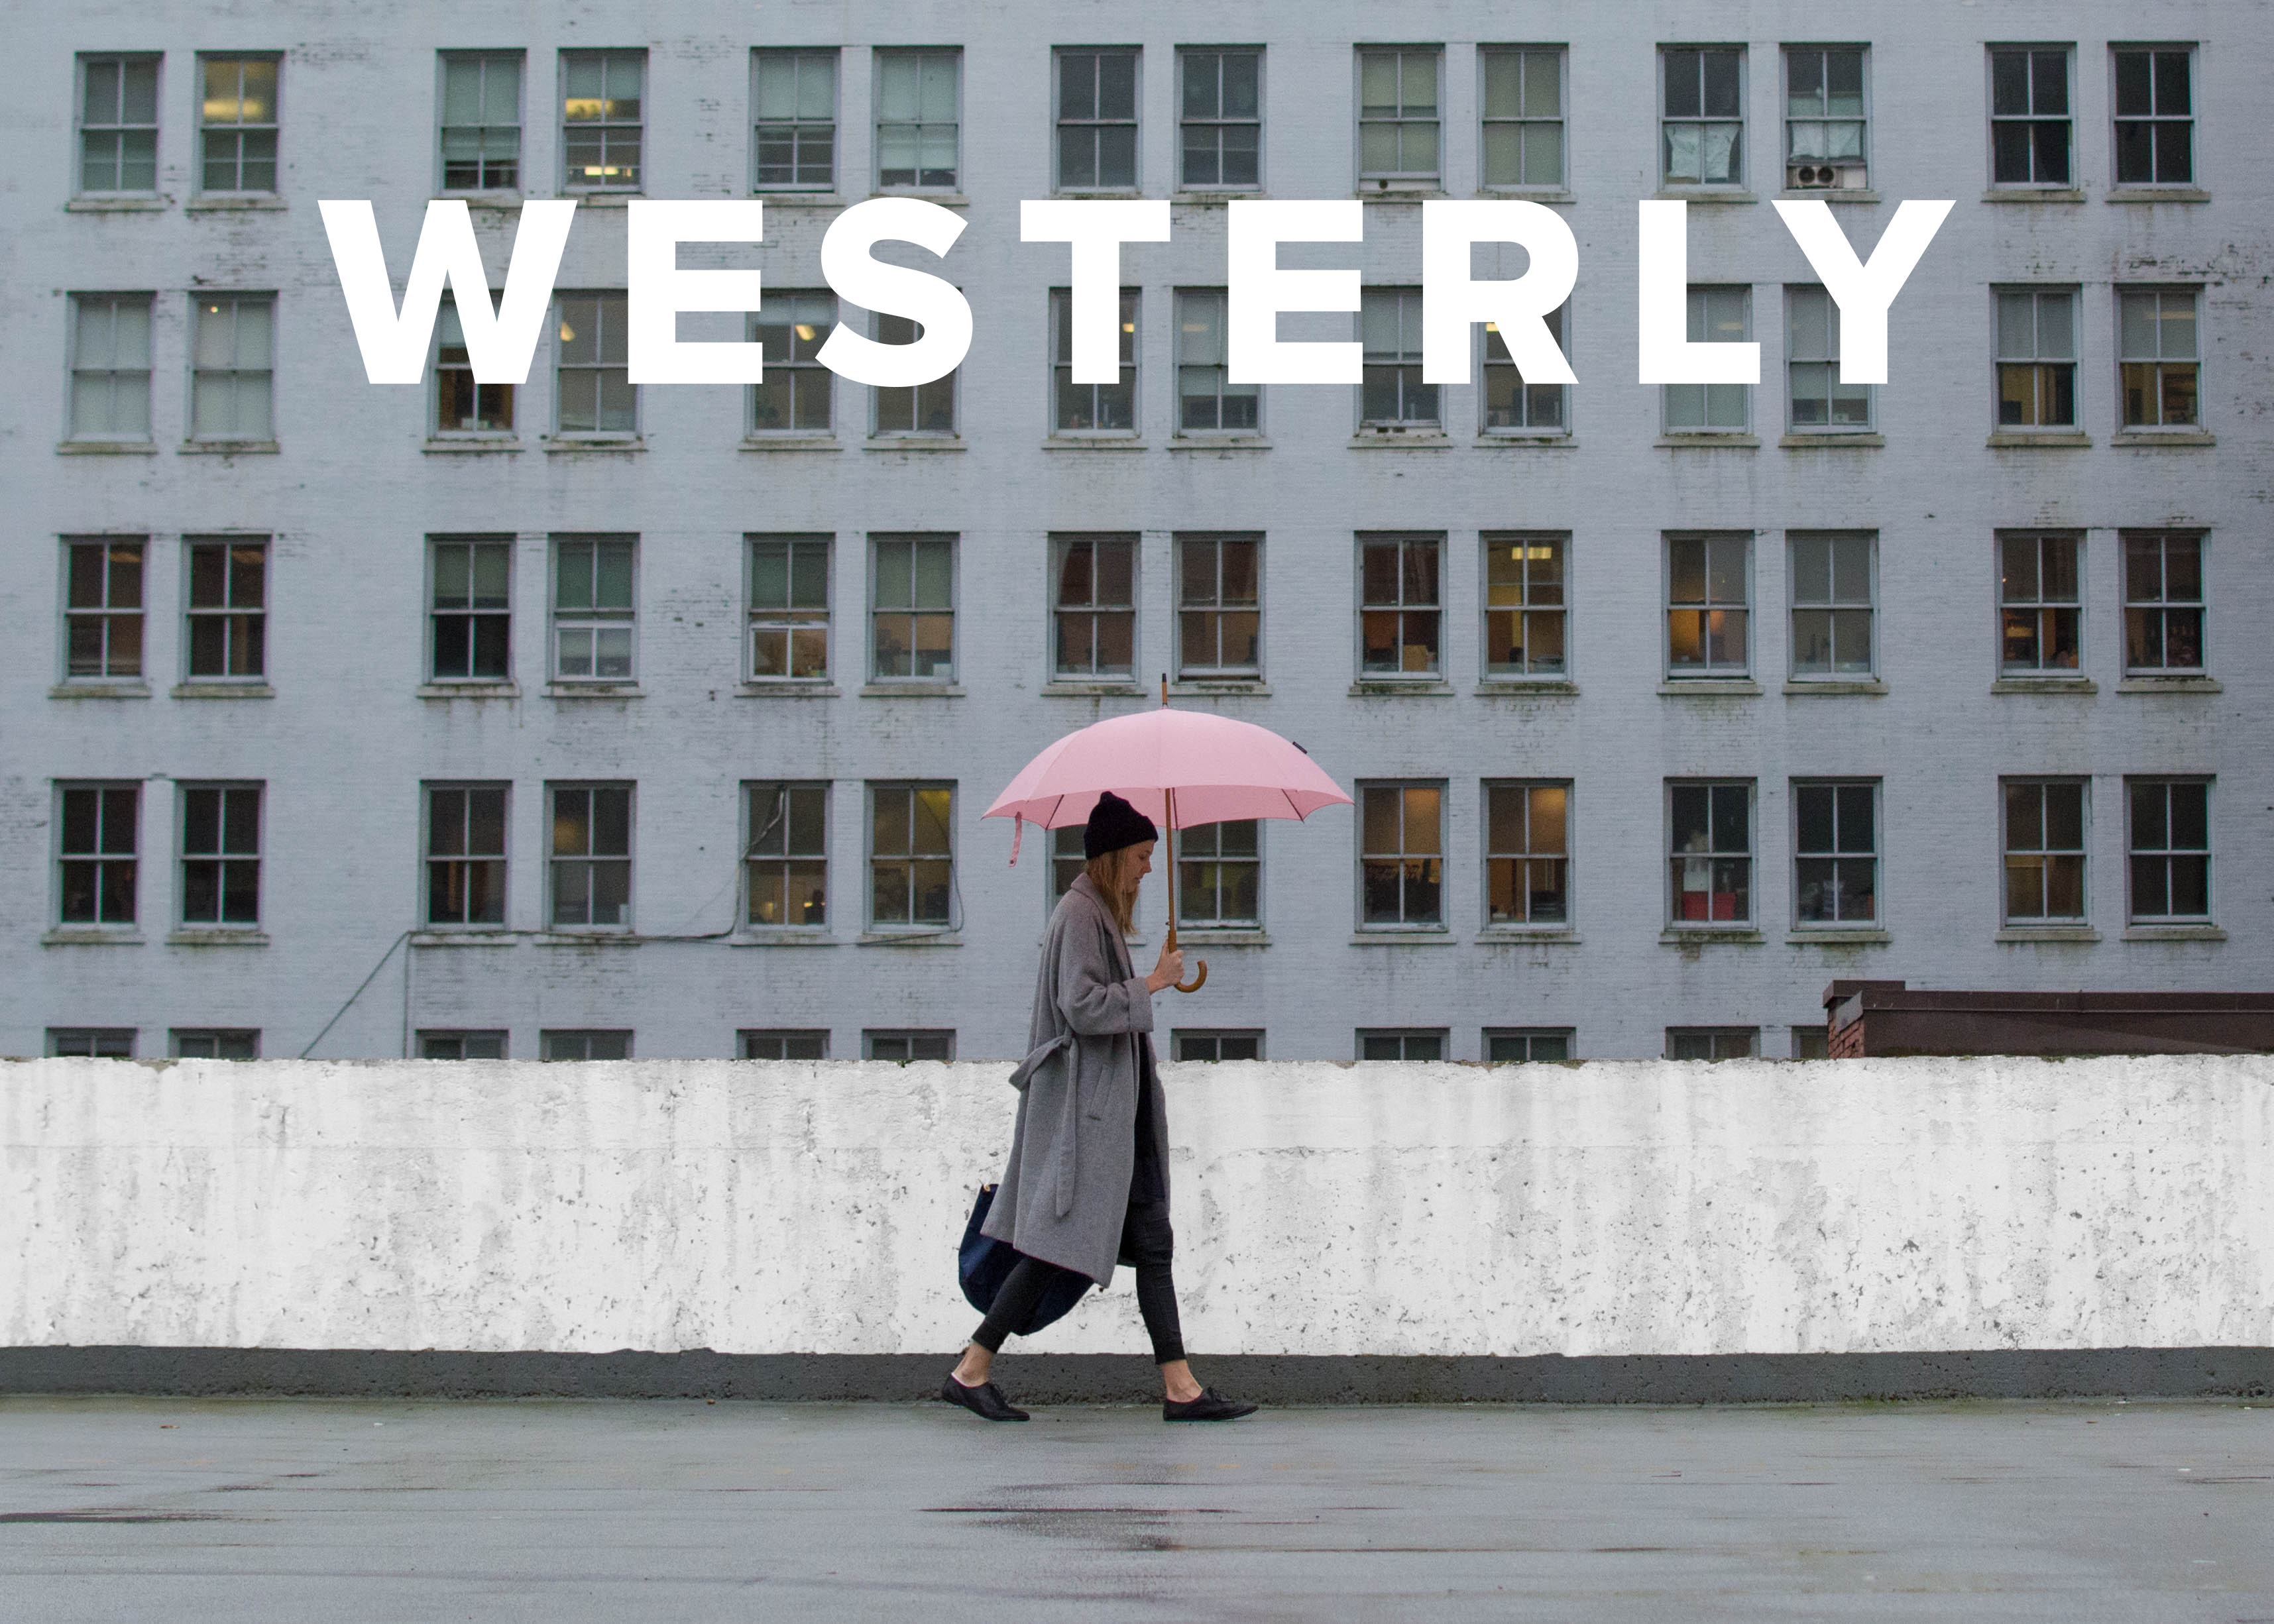 Westerly Goods